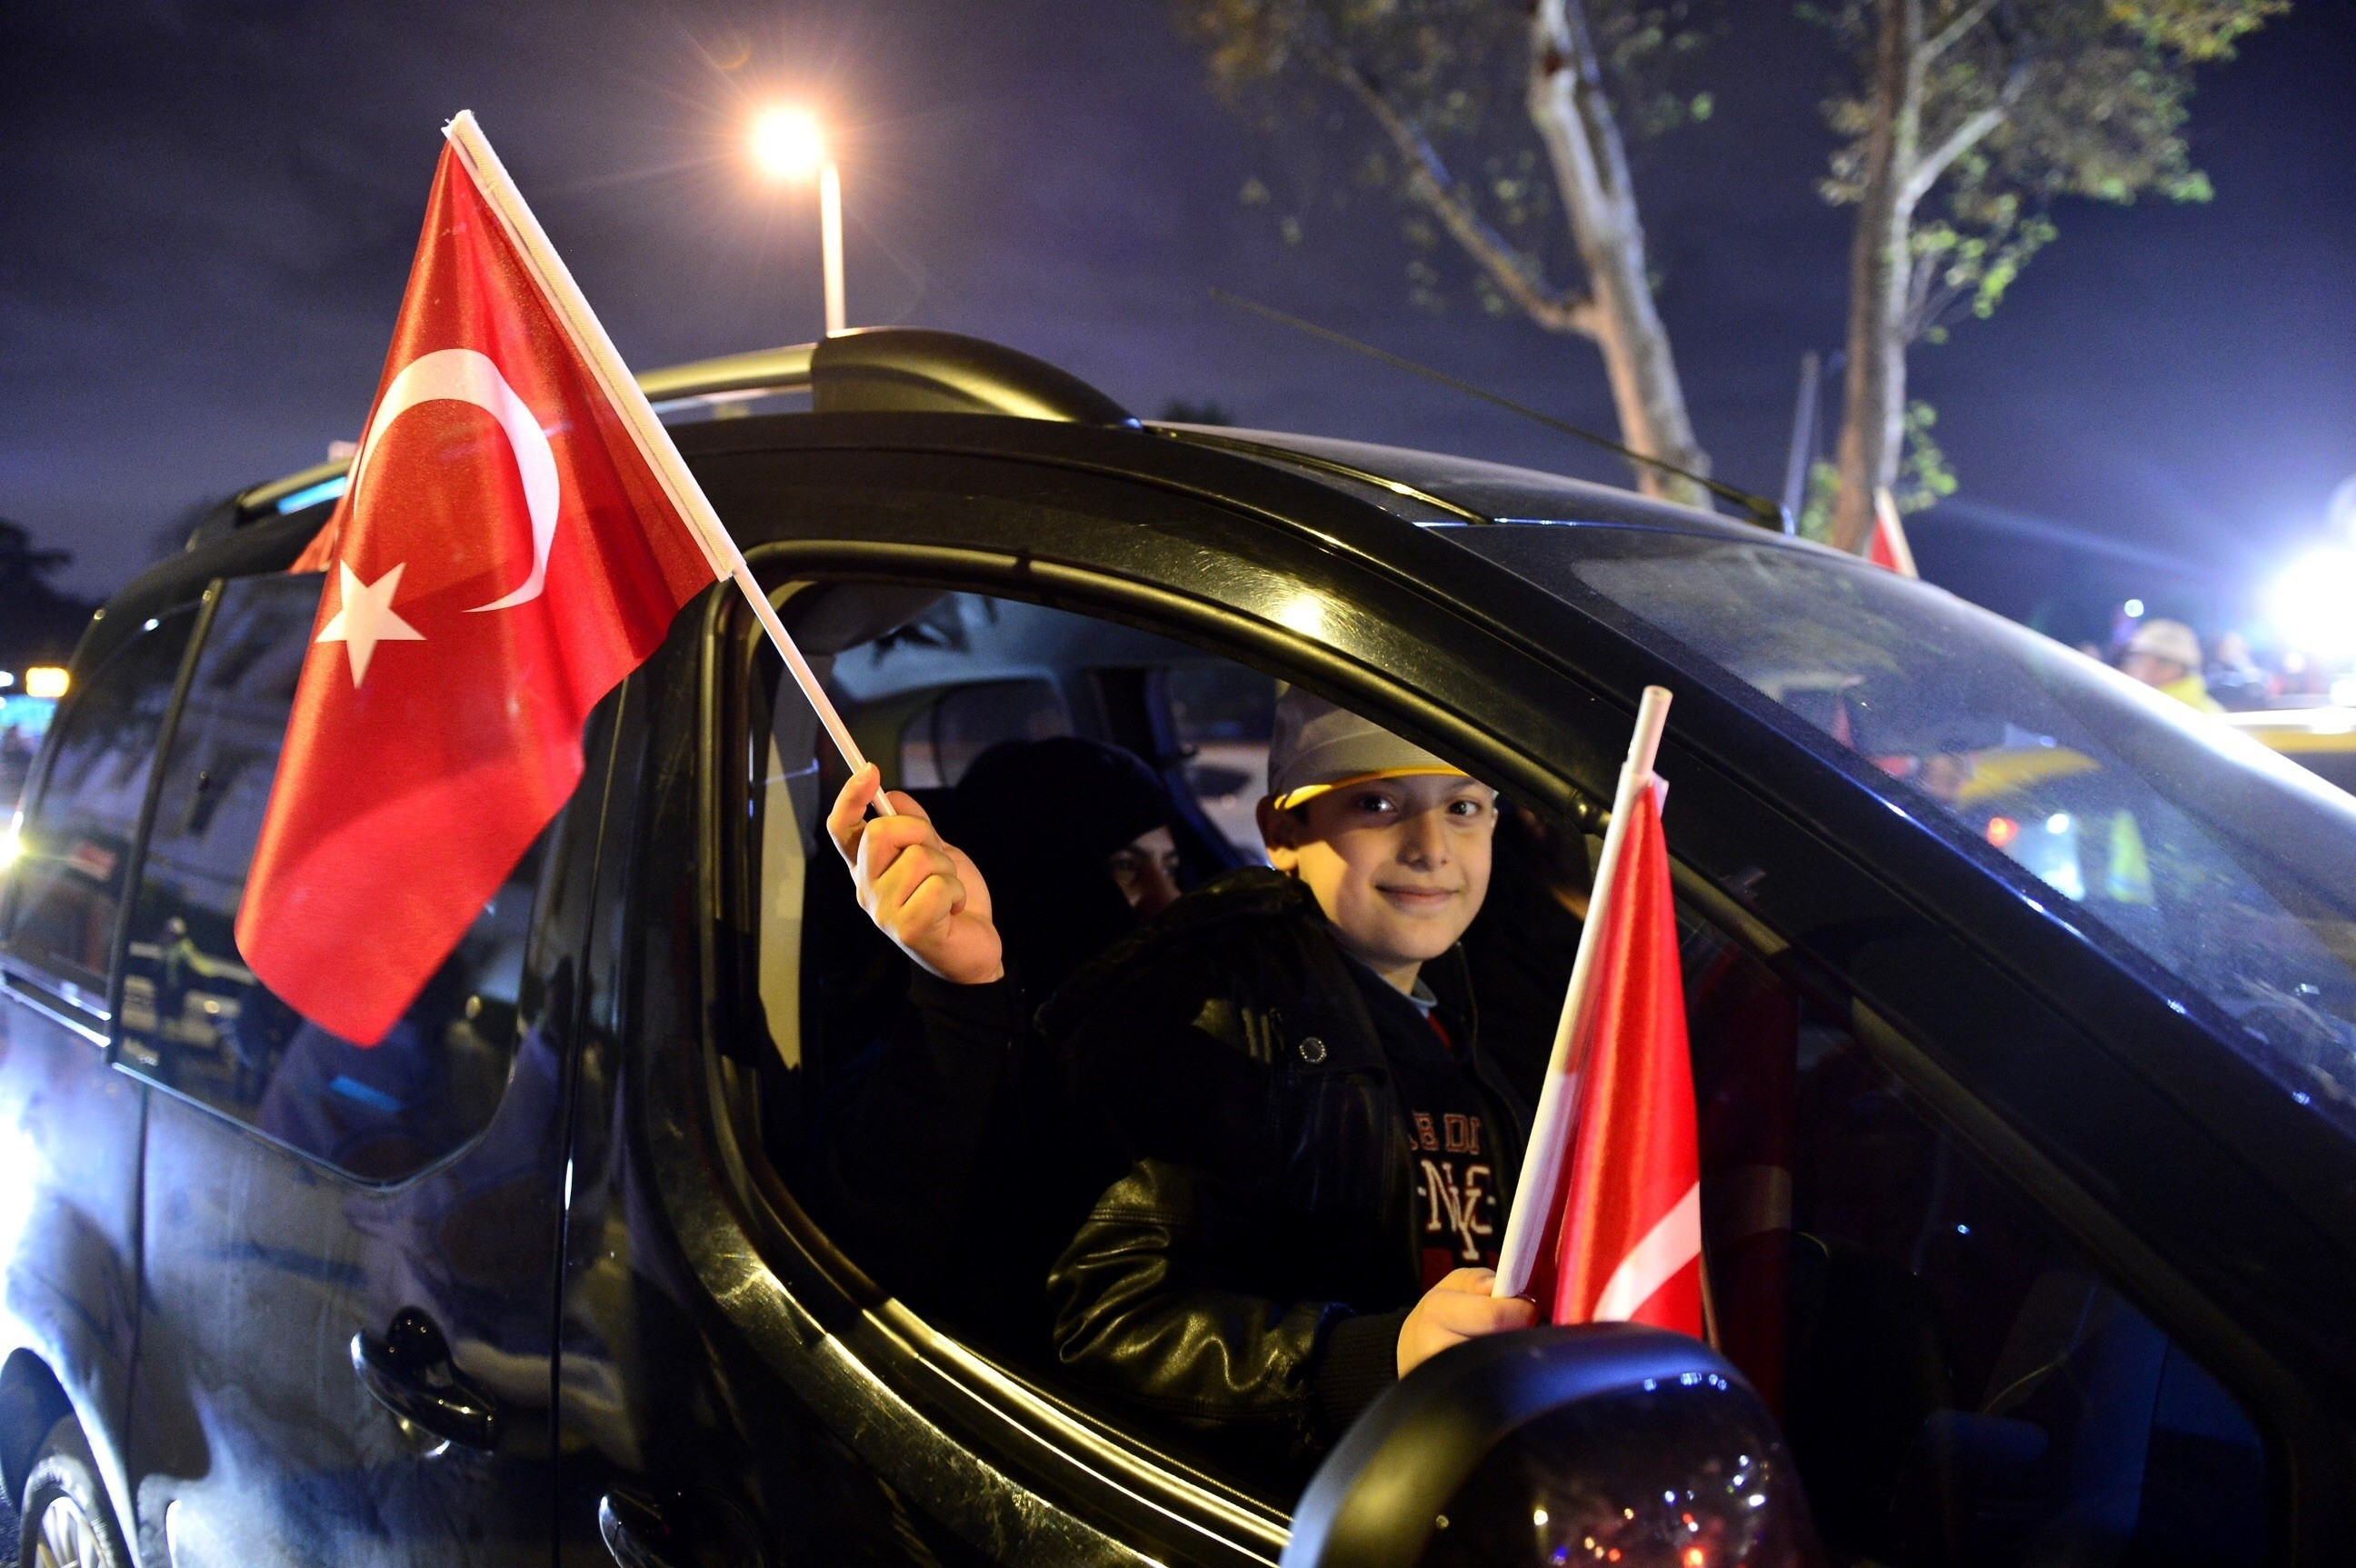 Turkey's Justice and Development (AK) Party supporters' celebration in Istanbul